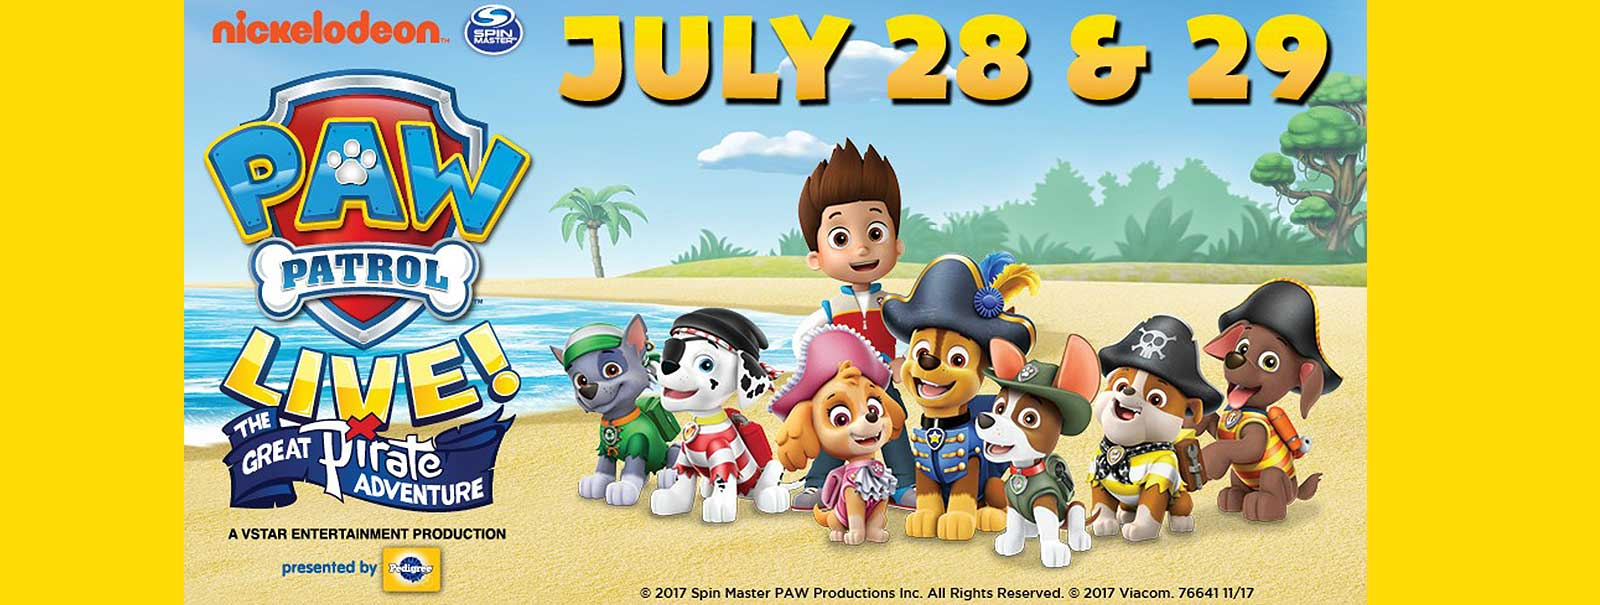 More Info - PAW Patrol Live! The Great Pirate Adventure